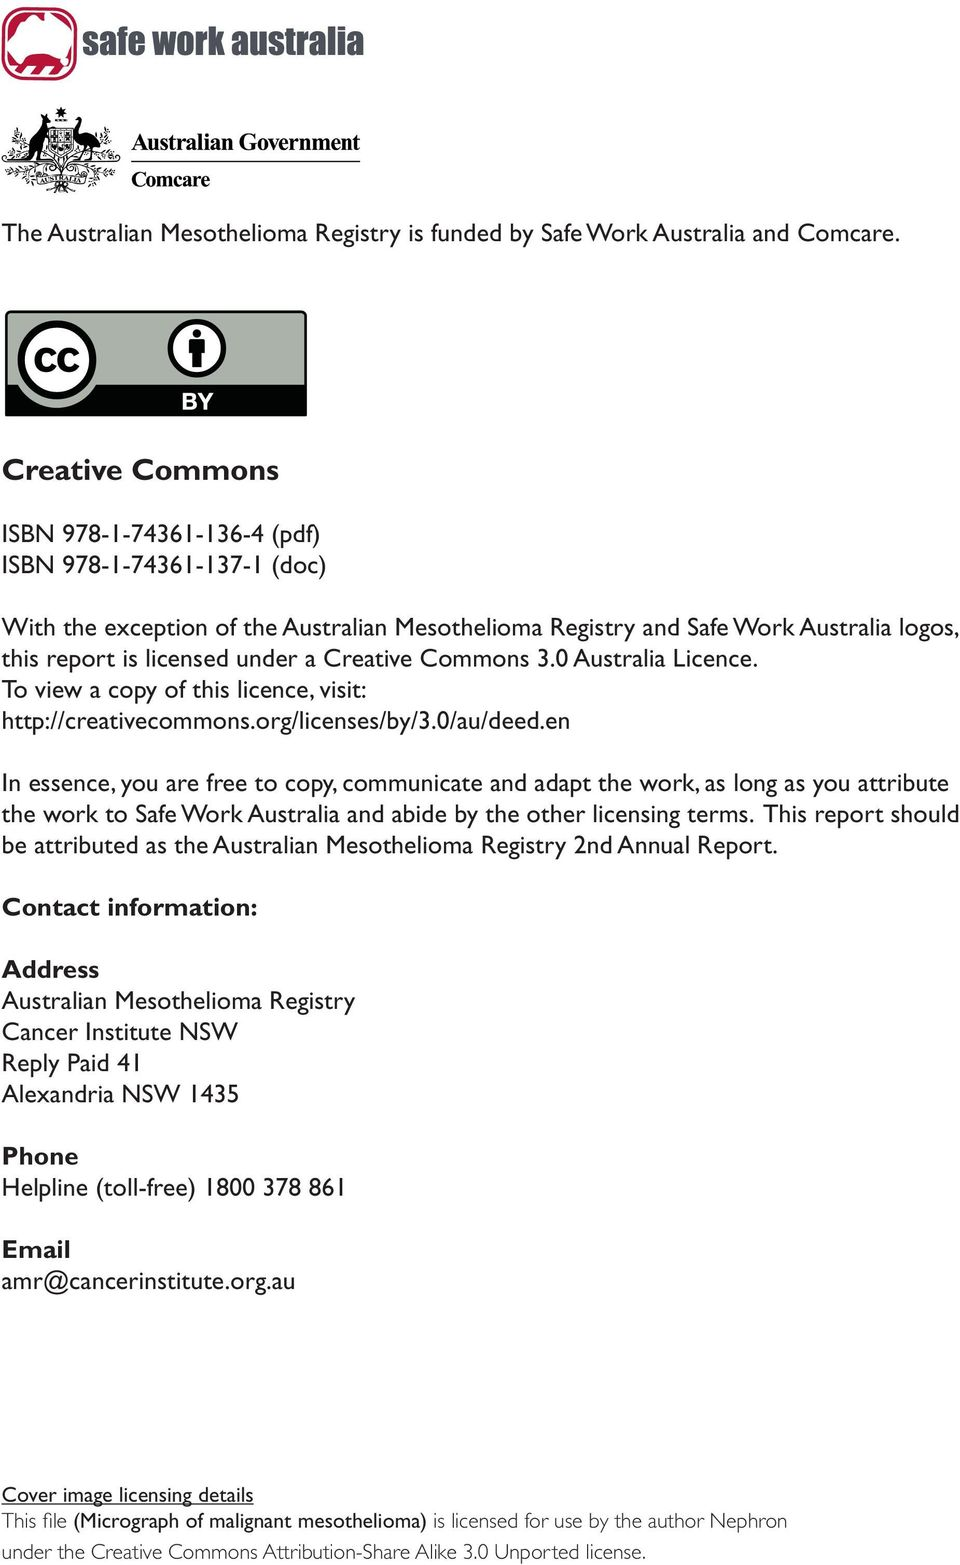 Creative Commons 3.0 Australia Licence. To view a copy of this licence, visit: http://creativecommons.org/licenses/by/3.0/au/deed.